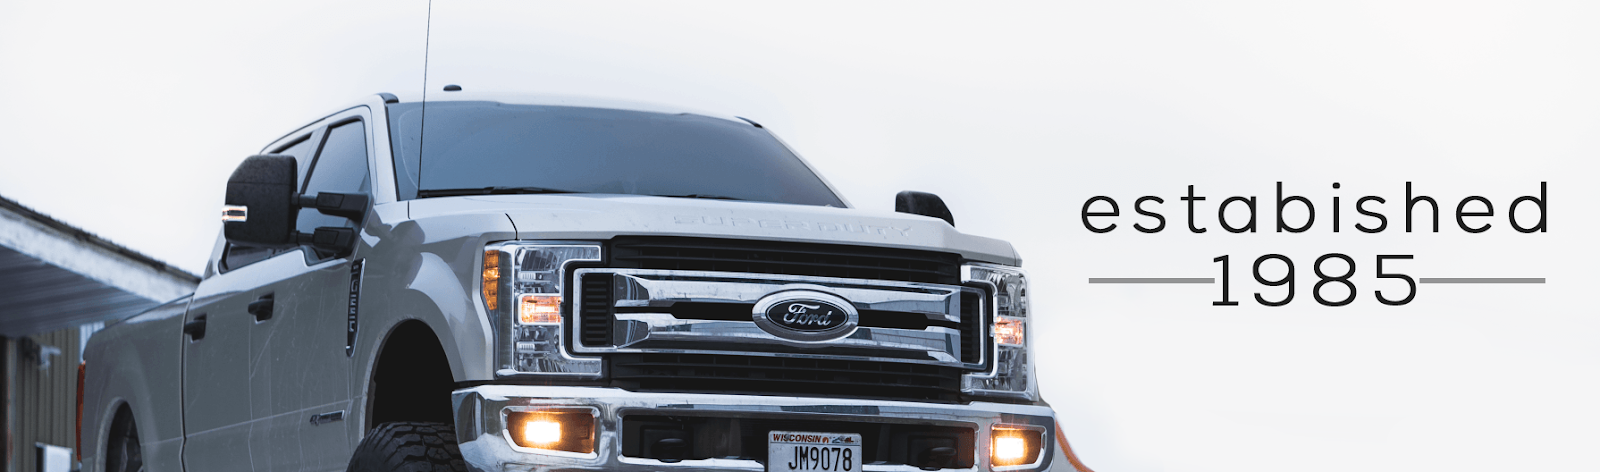 Toys For Trucks® Official Site | Truck & Jeep Accessories |